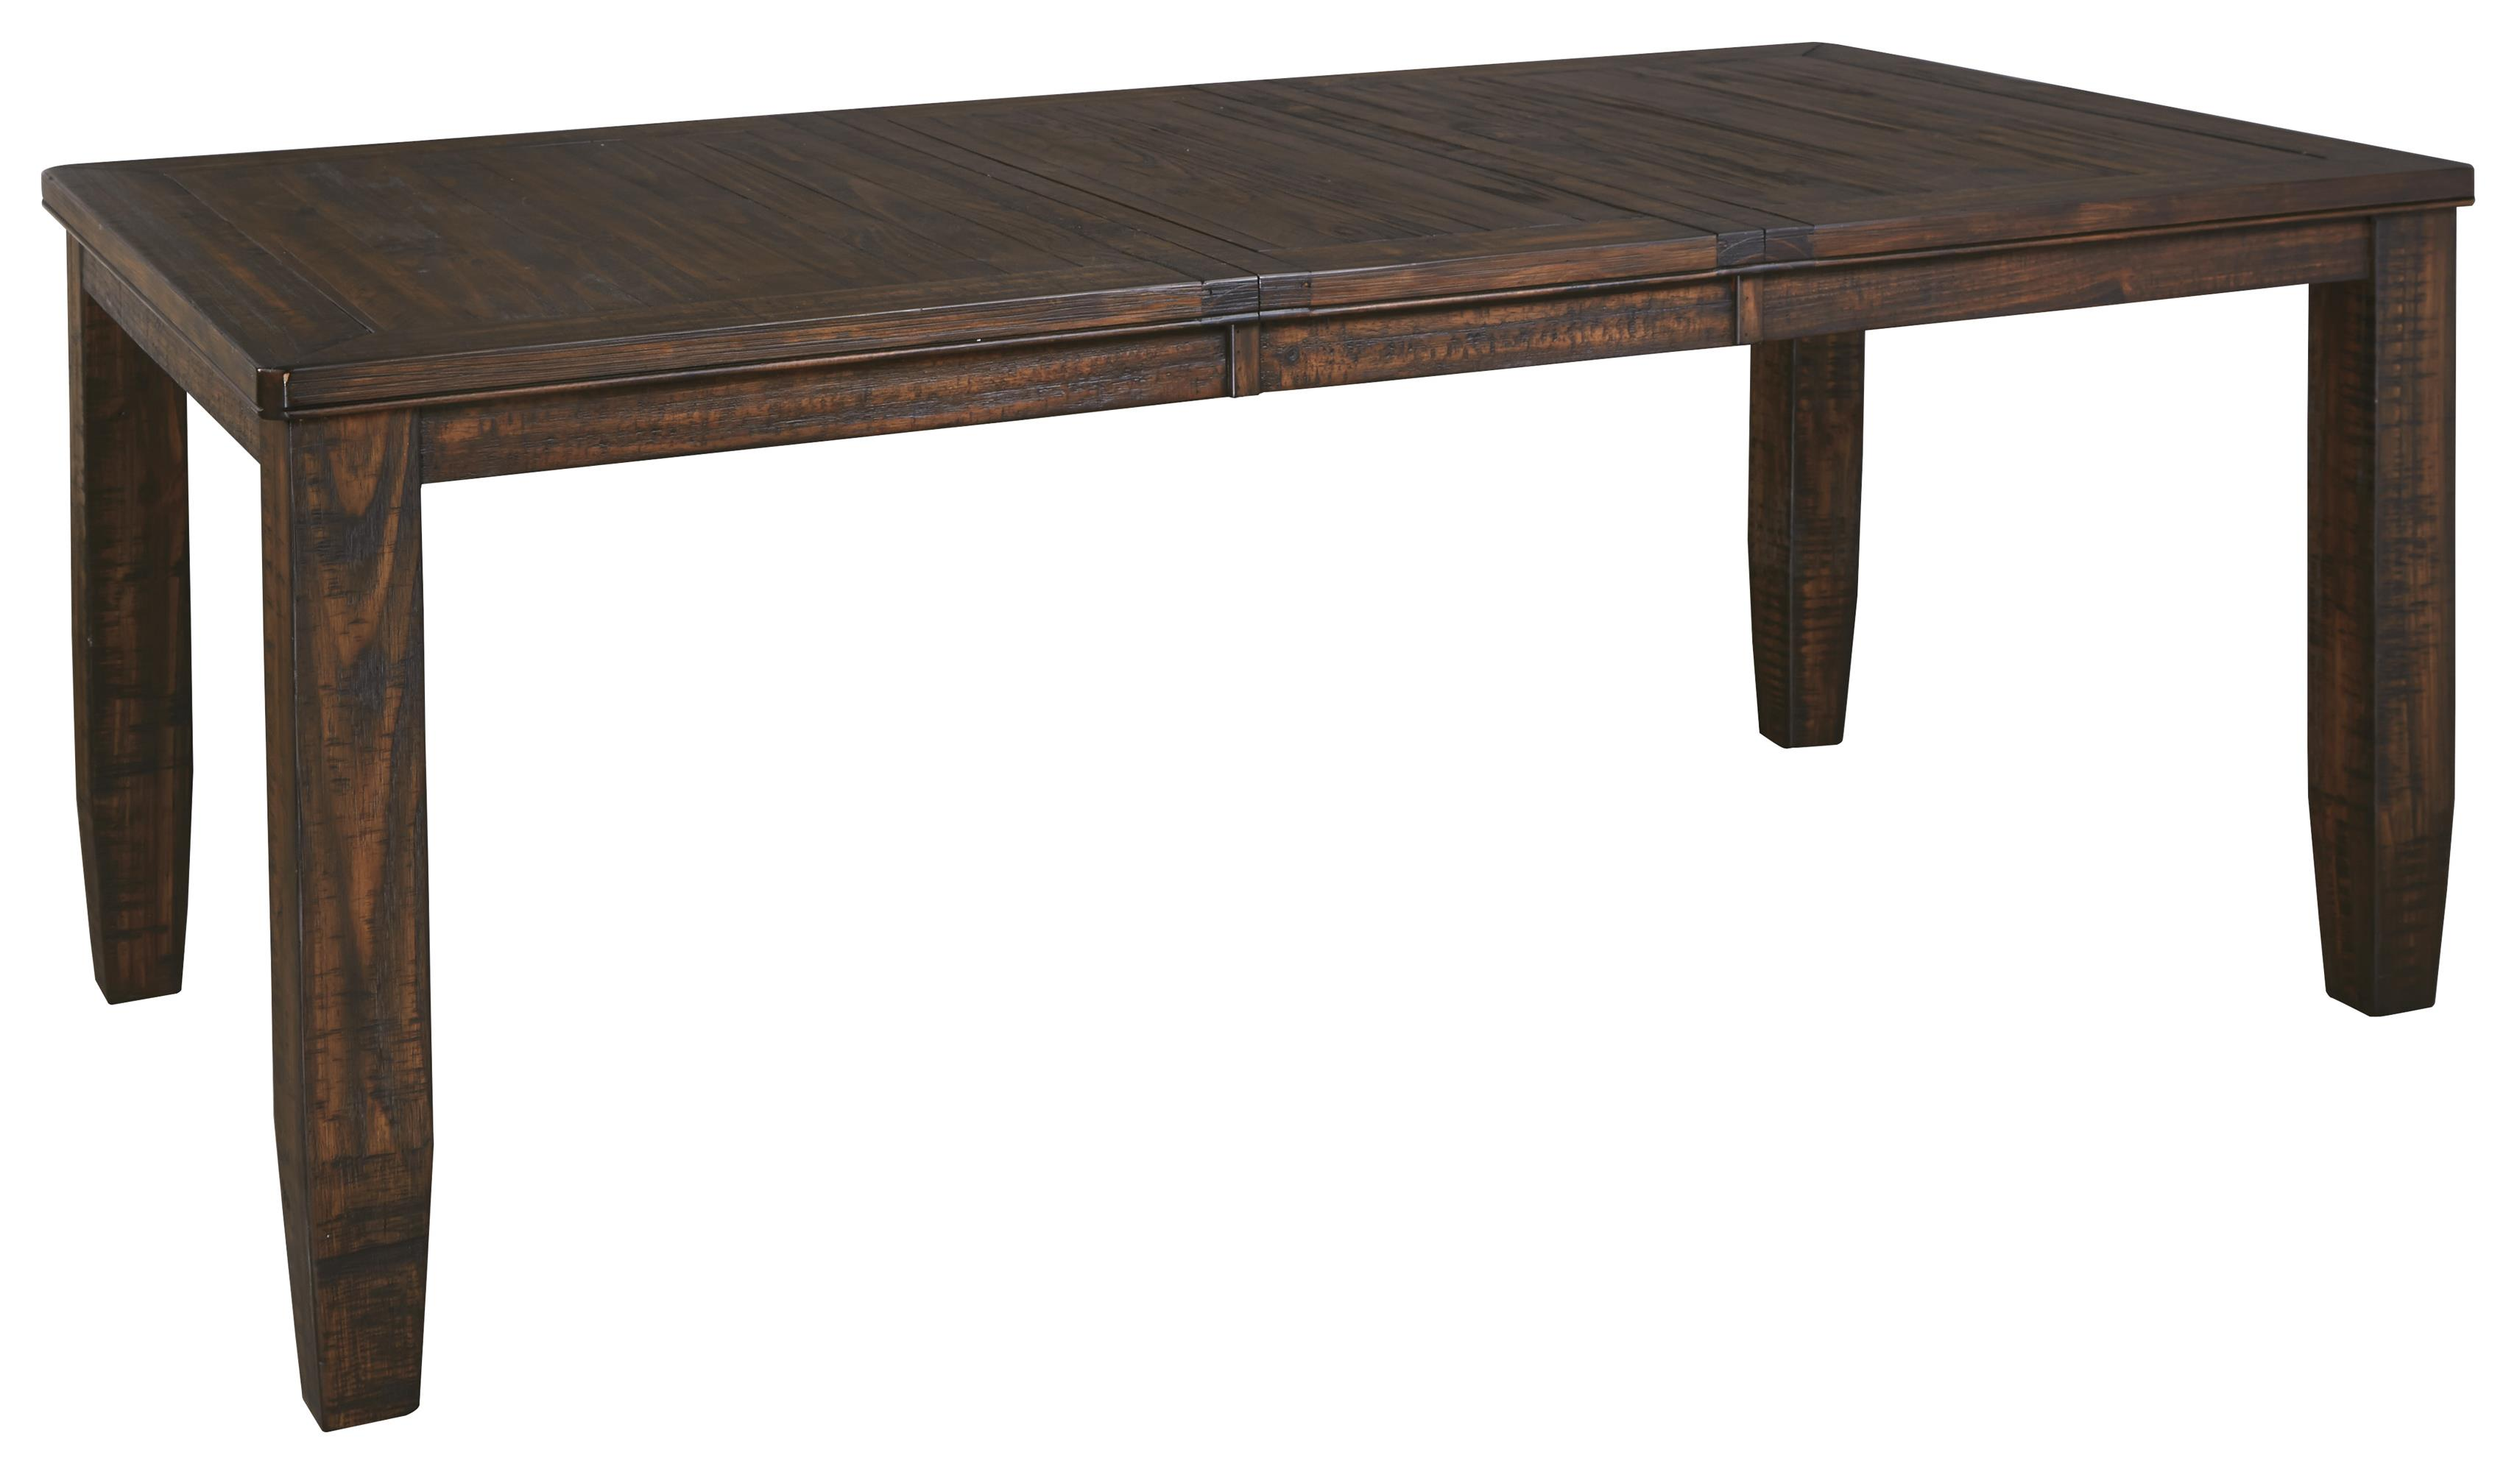 Solid Wood Pine Rectangular Dining Room Extension Table